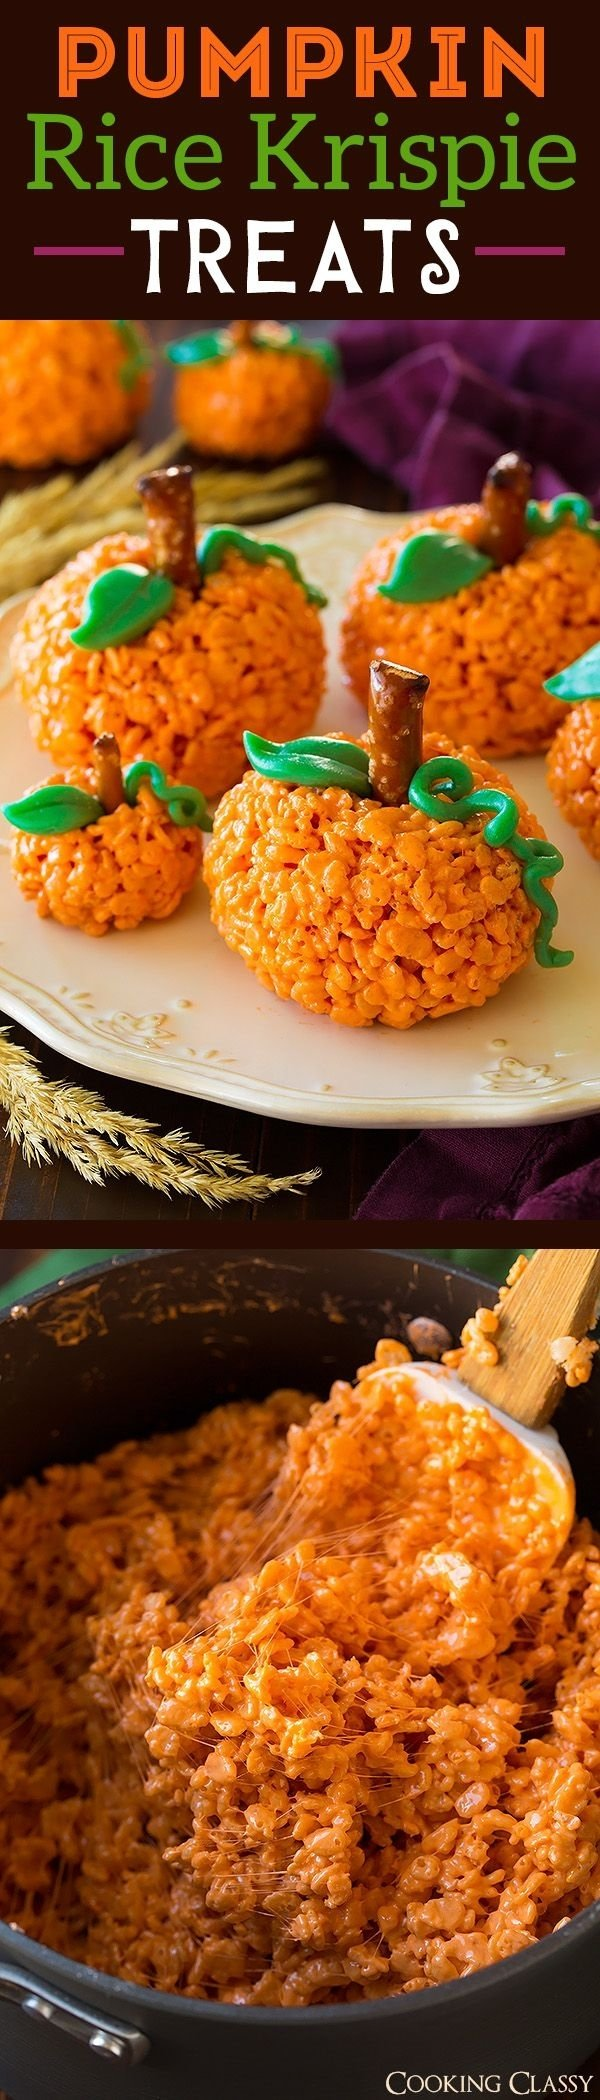 10 Awesome Halloween Baking Ideas For Kids 643 best cooking classy desserts images on pinterest 2020